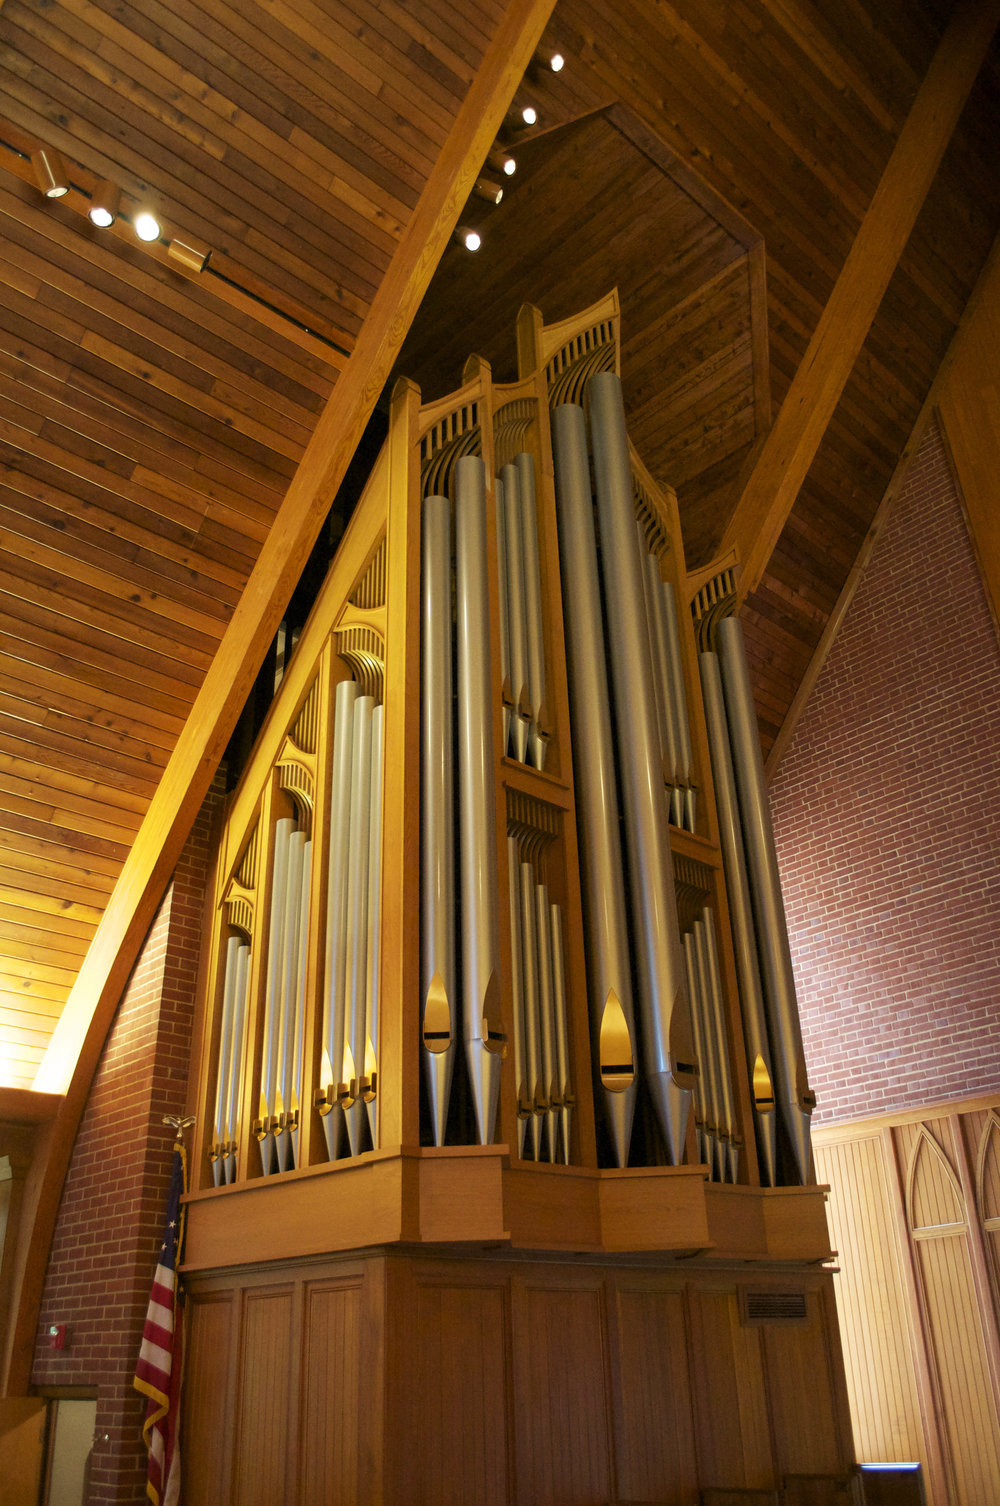 Nichols and Simpson pipe organ